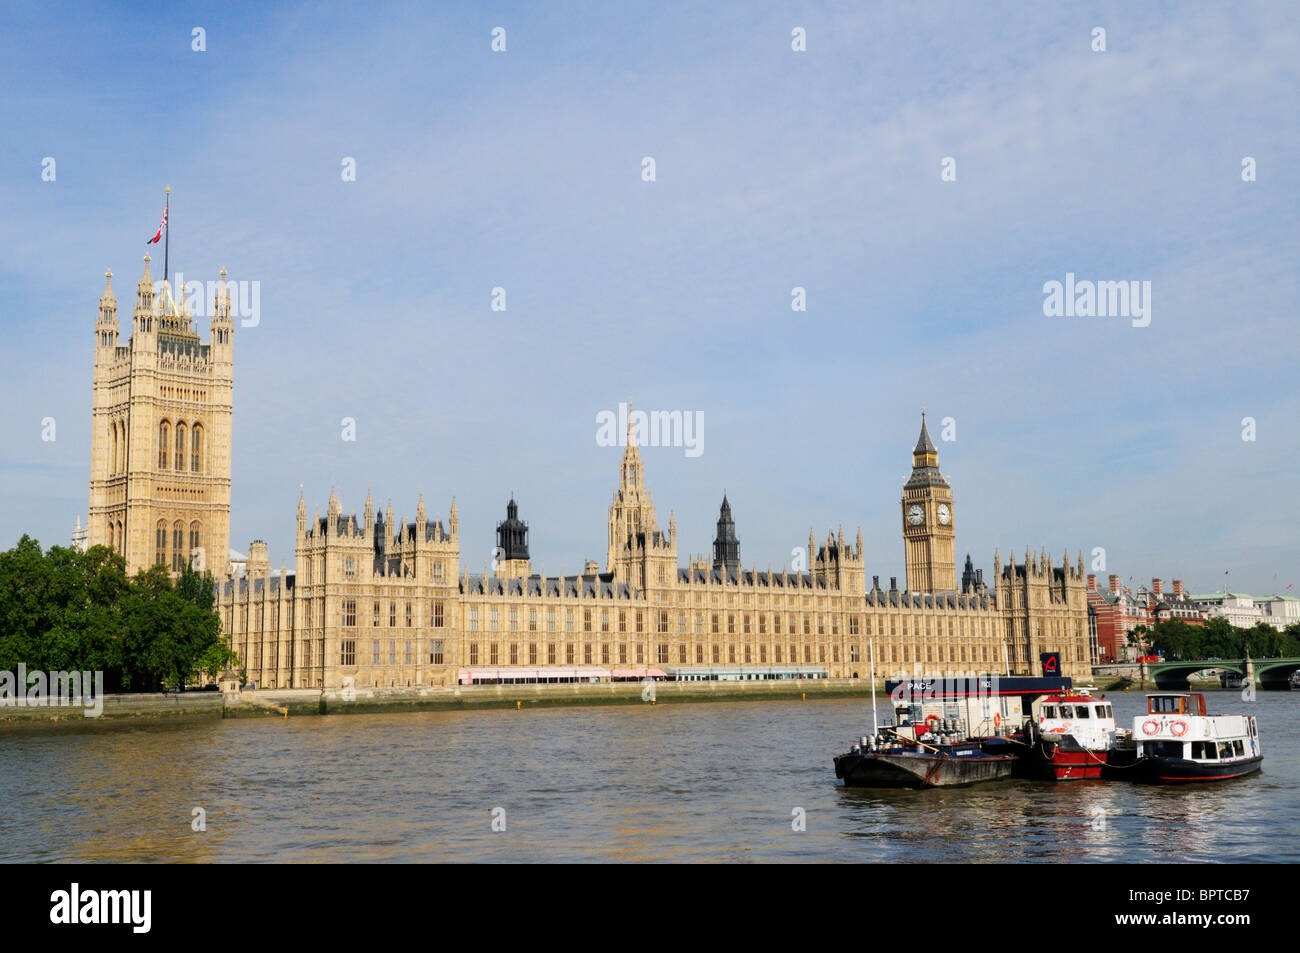 Houses of Parliament, Westminster, London, England, UK - Stock Image